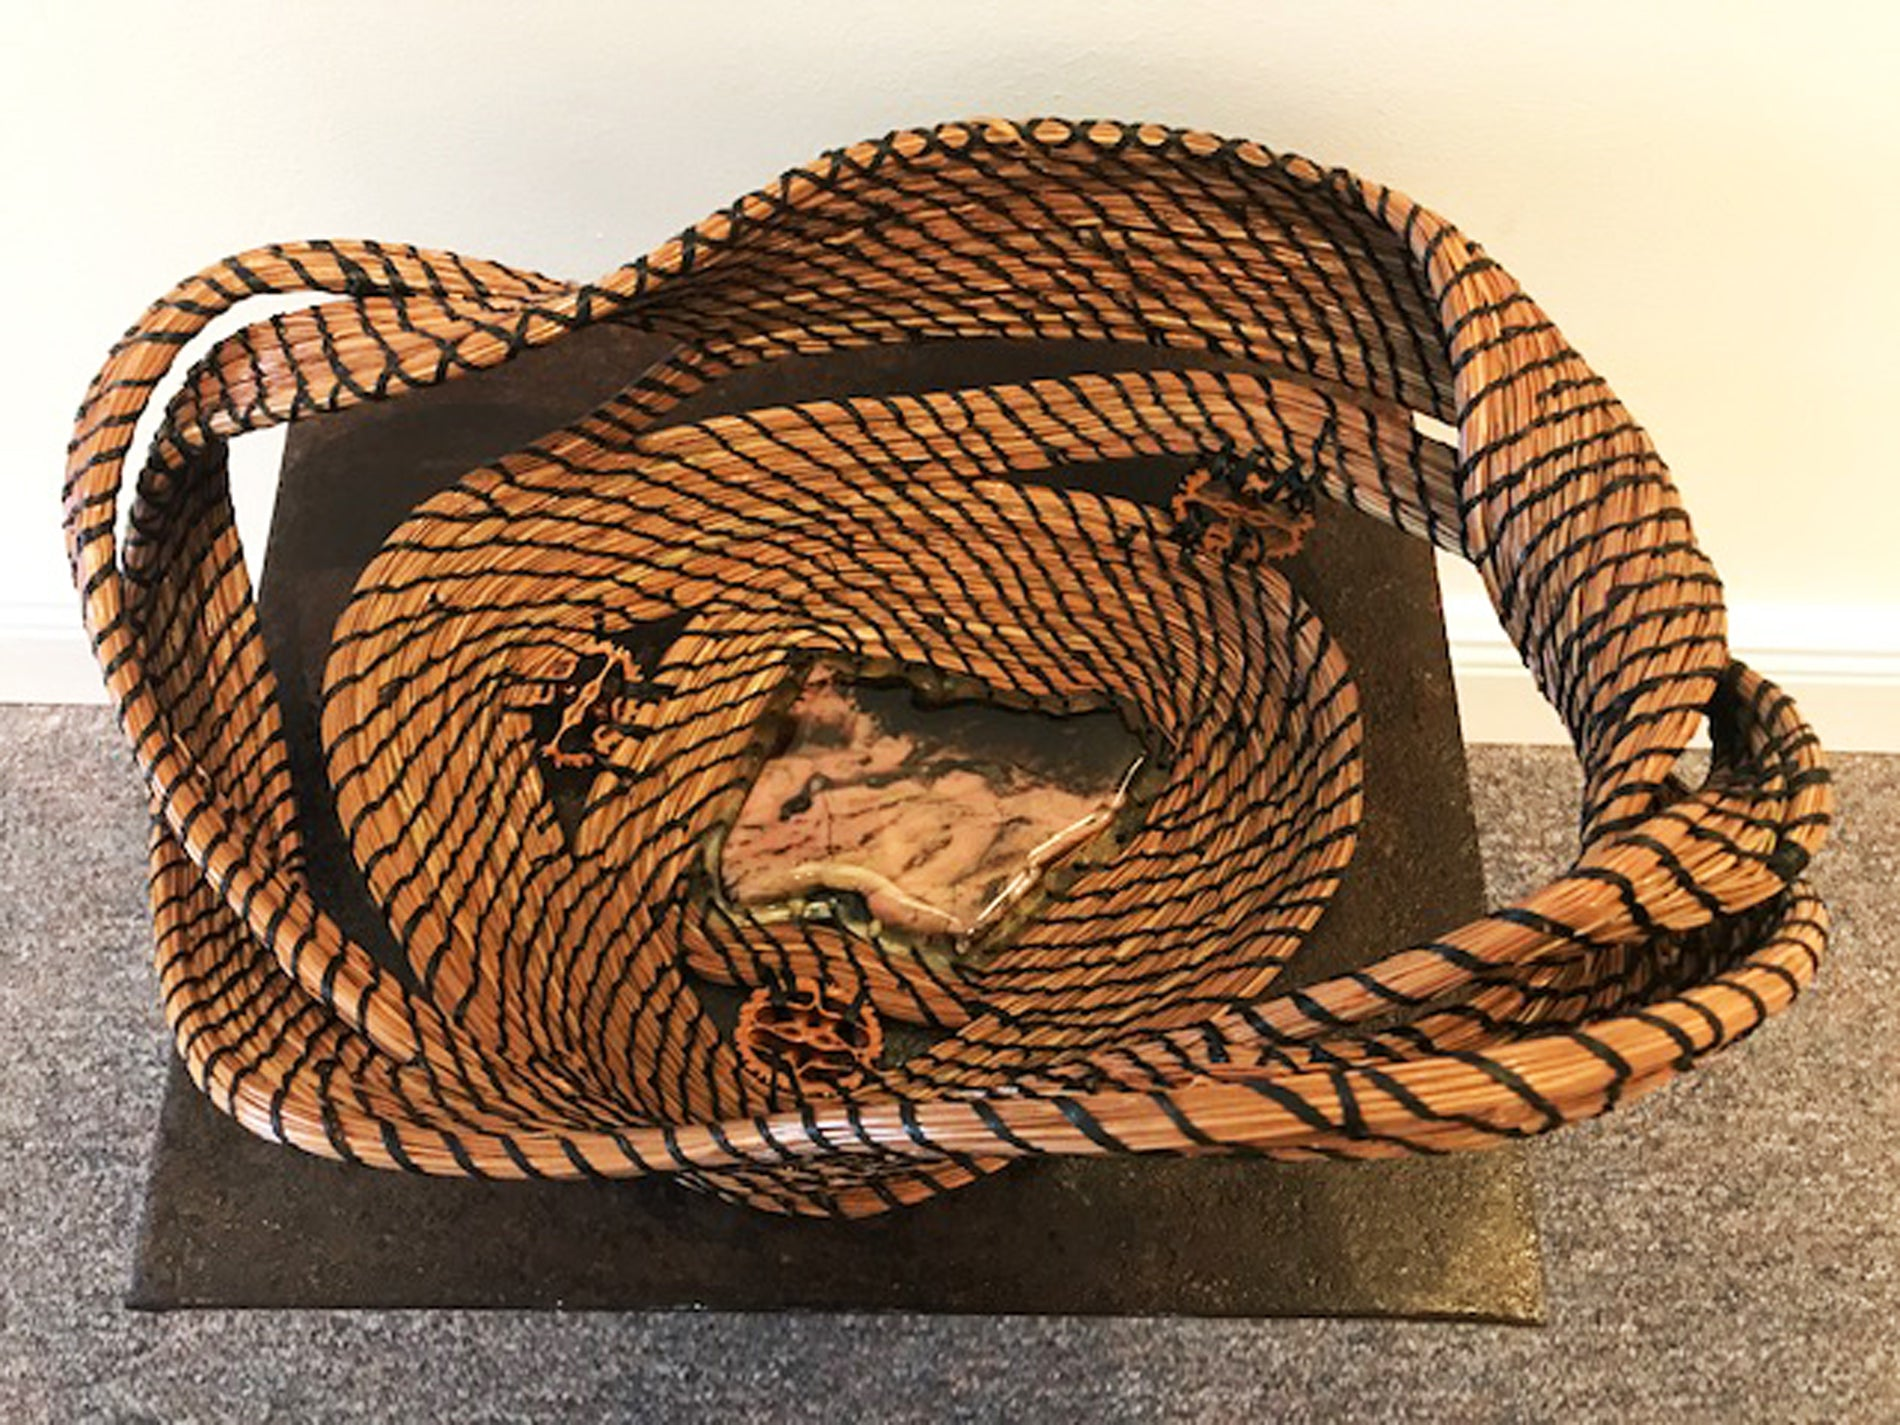 SOLD - Striped Pine Needle Sculpture